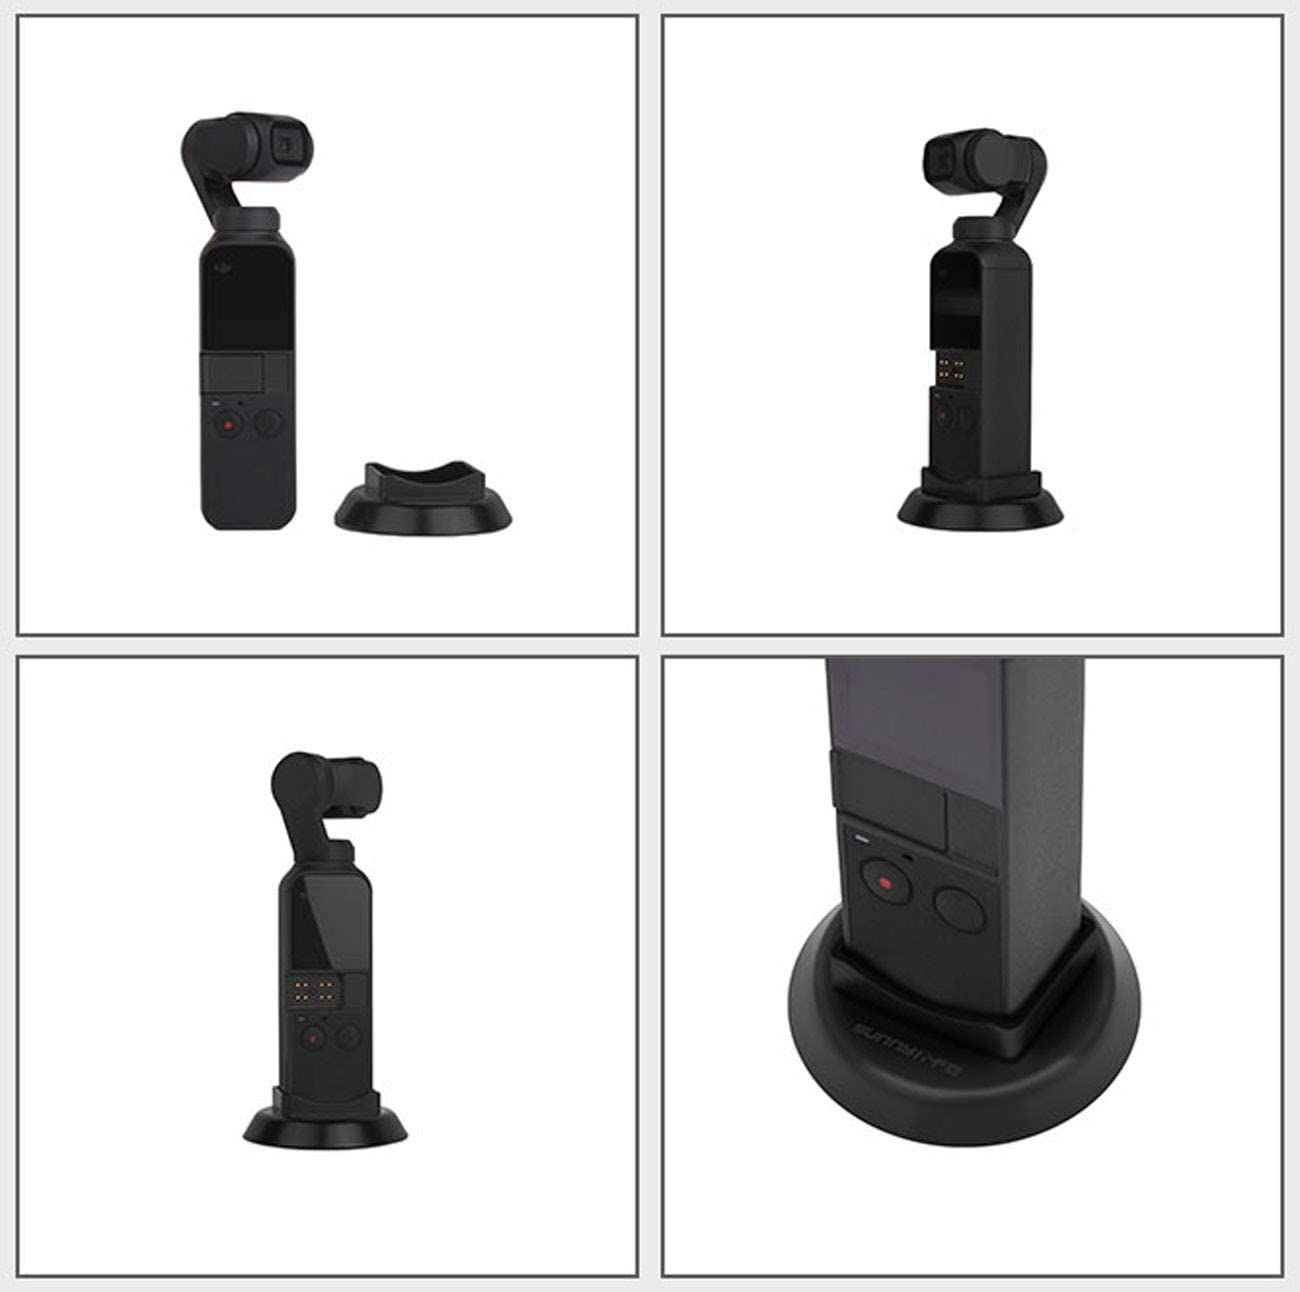 CZFRIEND OSMO Pocket Camera Accessories Kits: Adapter Supporting Base Gimbal Camera Cover Extension Tripod